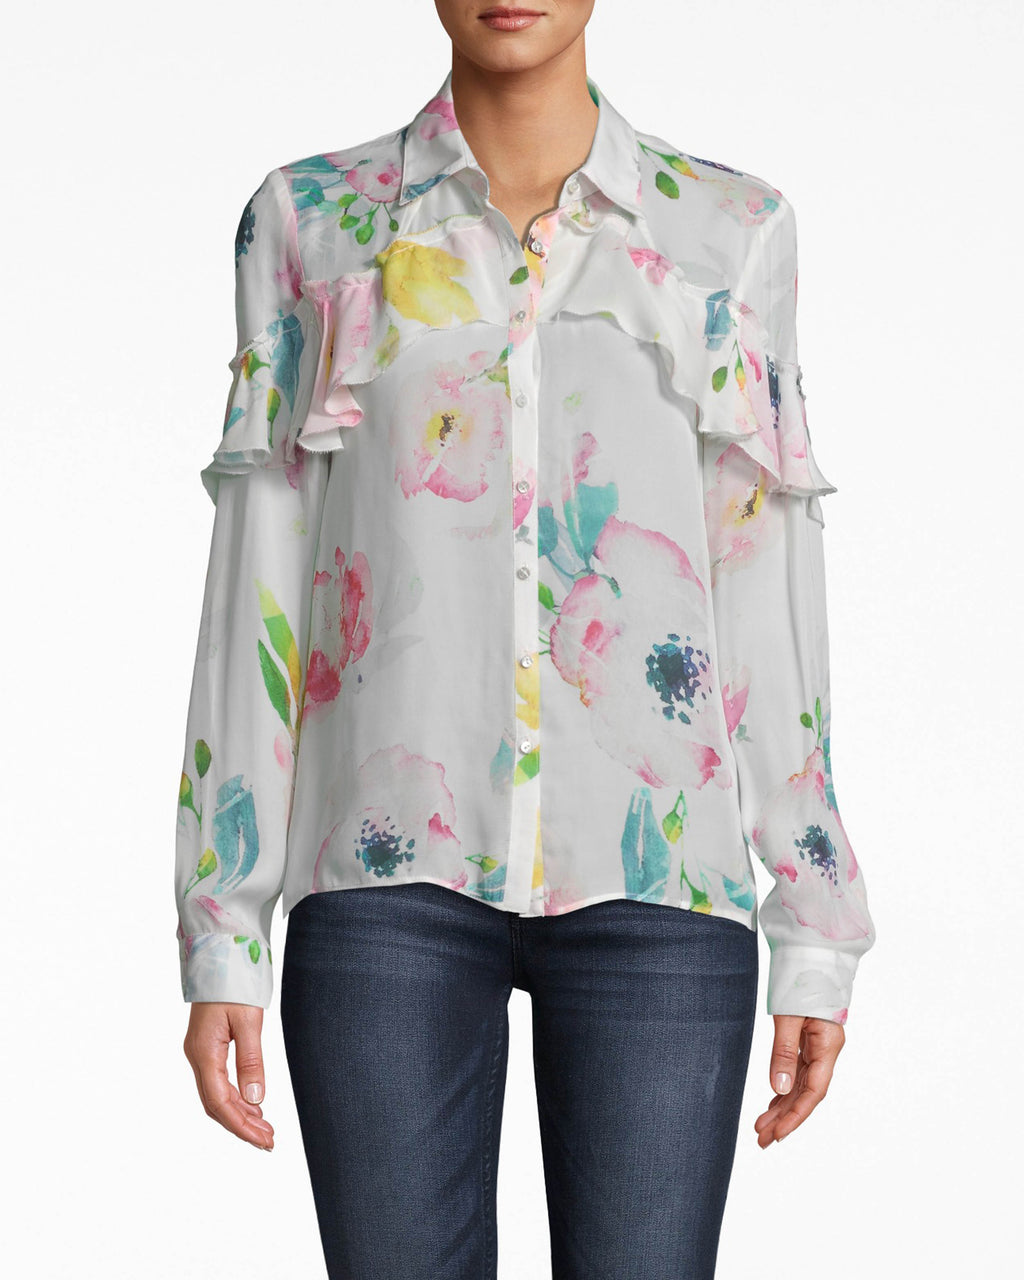 BG10344 - LA FLEUR SILK BOYFRIEND BLOUSE - tops - blouses - DEFINITELY NOT YOUR BOYFRIENDS BLOUSE. THIS BUTTON UP STYLE HAS RUFFLE DETAILS AND IS MADE FROM AIRY SILK. Add 1 line break STYLIST TIP: WEAR JEANS AND CHUNKY WEDGES.